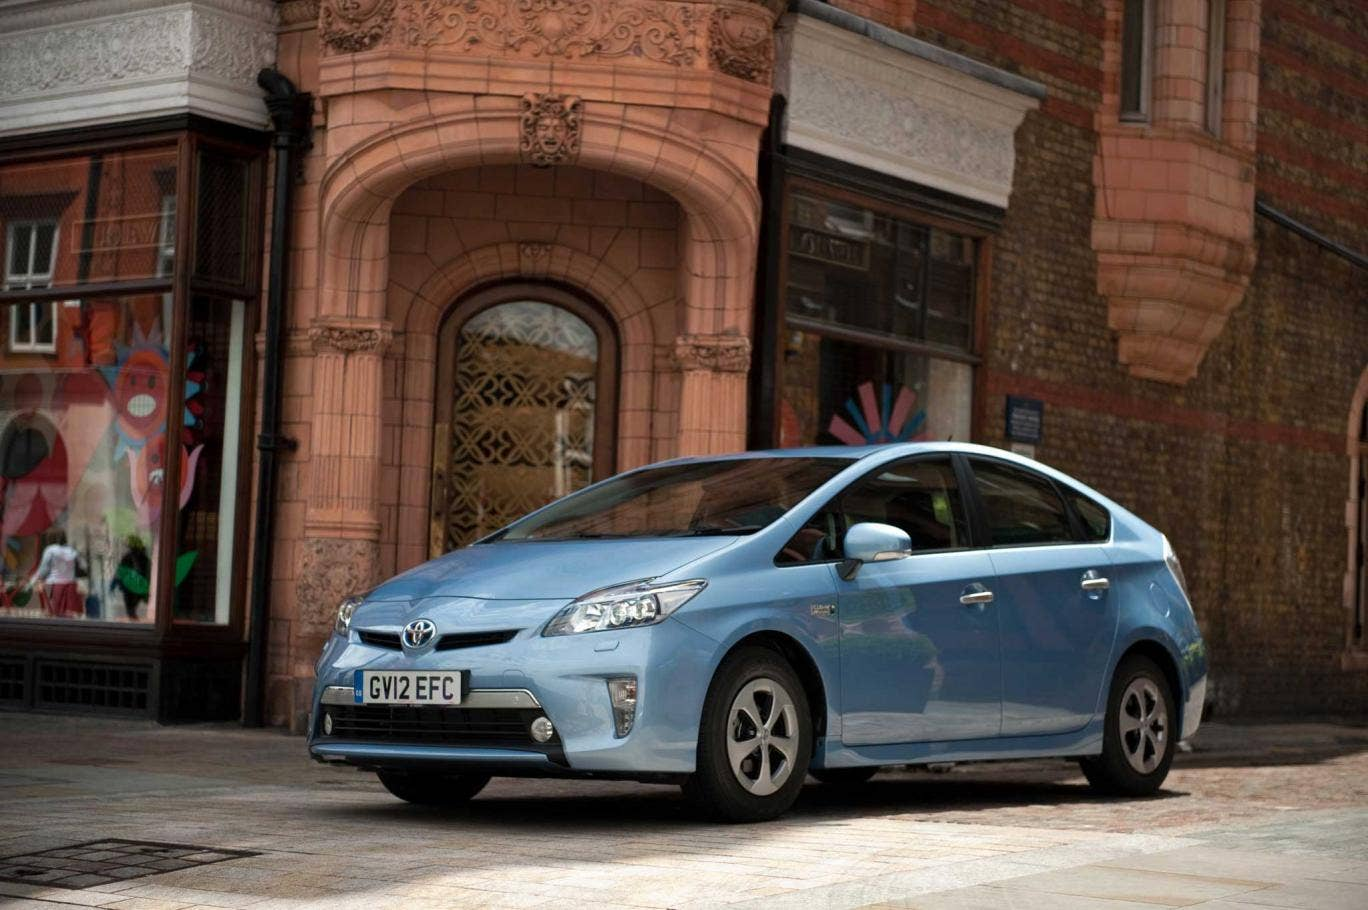 The best value hybrid car would be a Prius - £3,250 will buy a 2005 example with Spirit specification